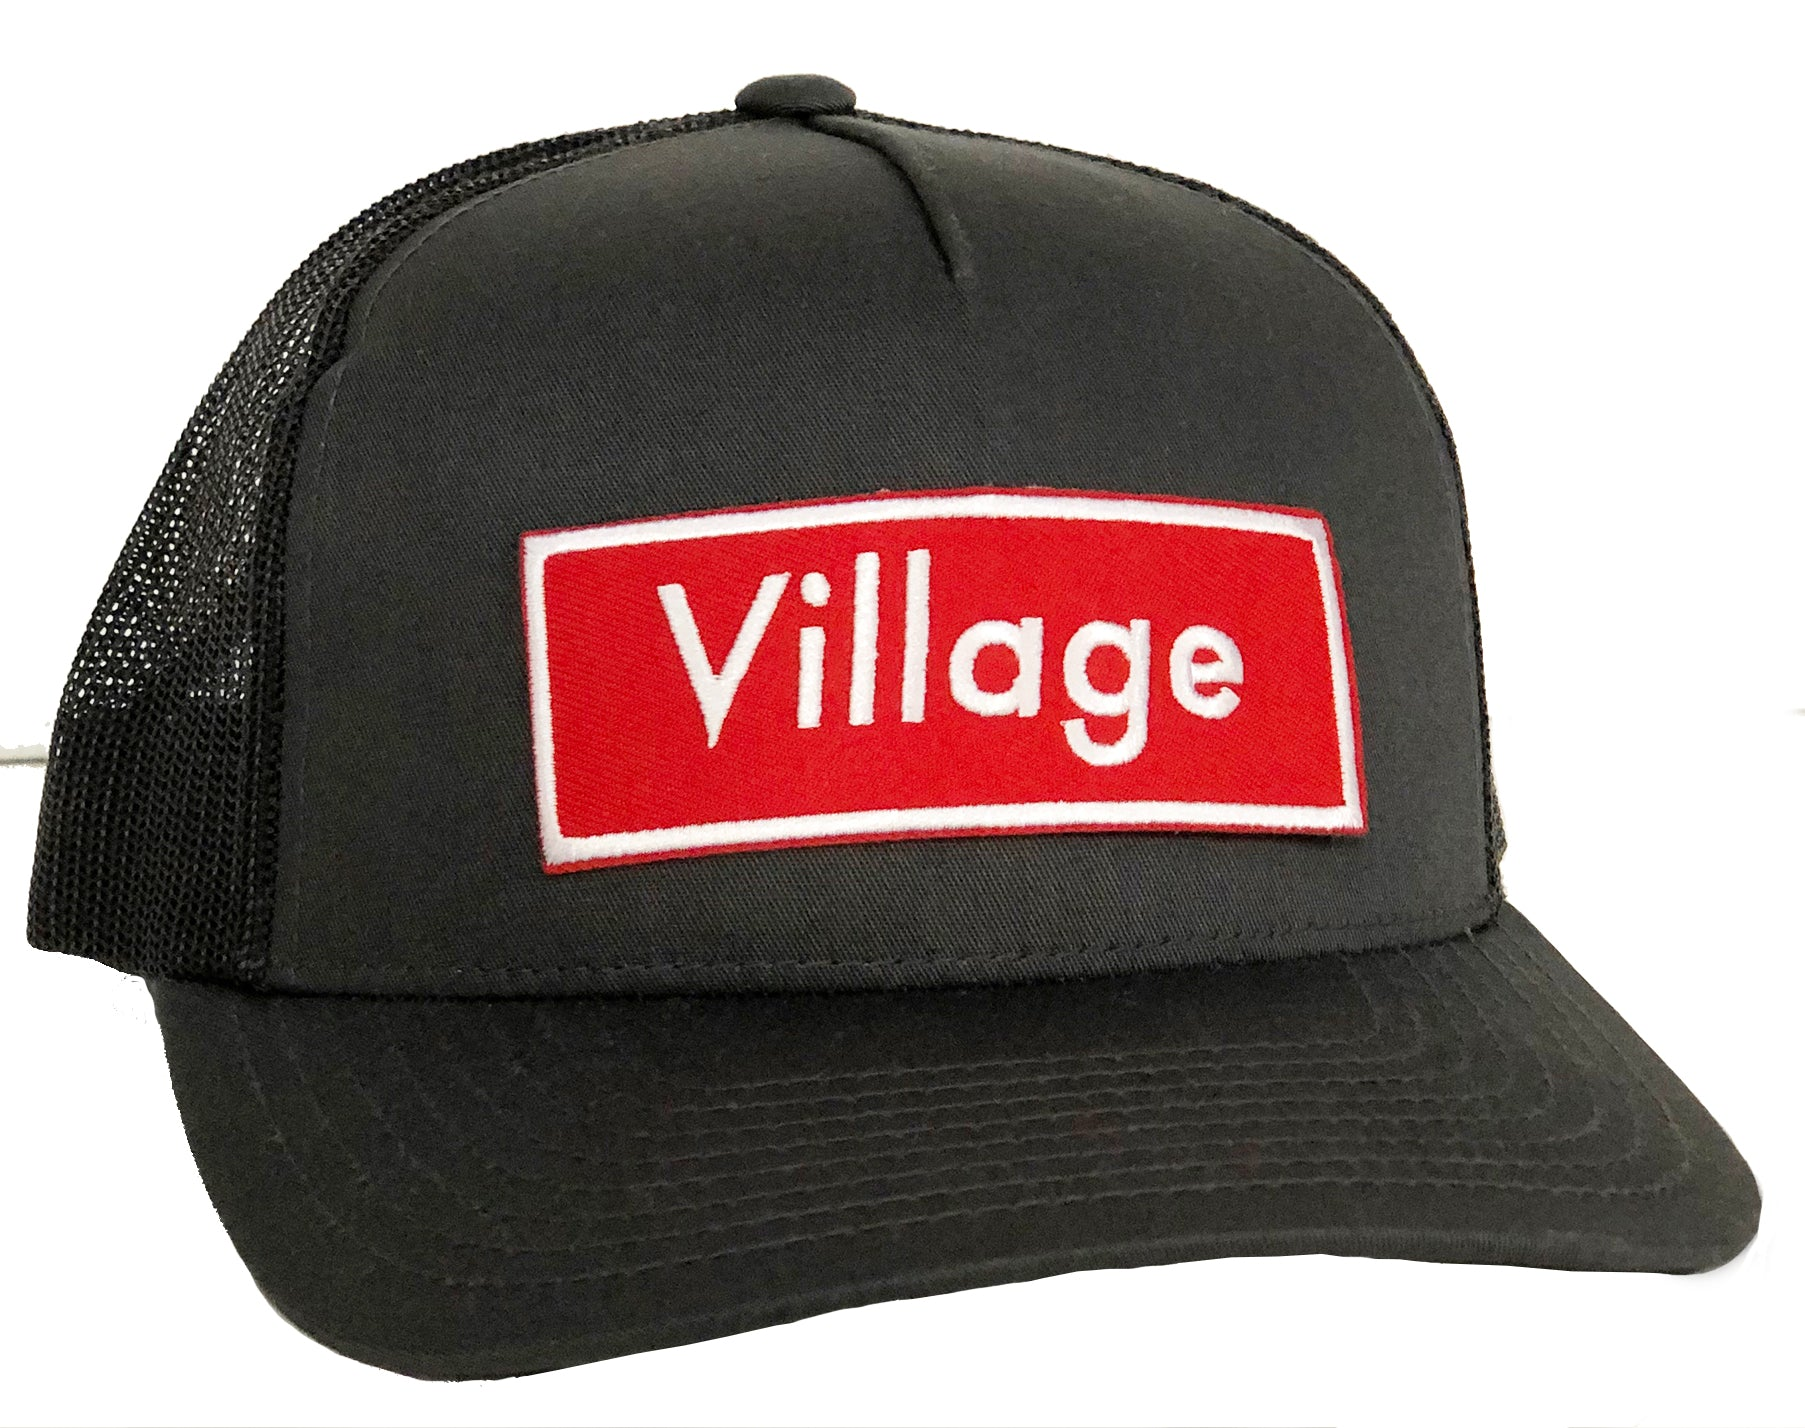 H. Village curved bill charcoal trucker